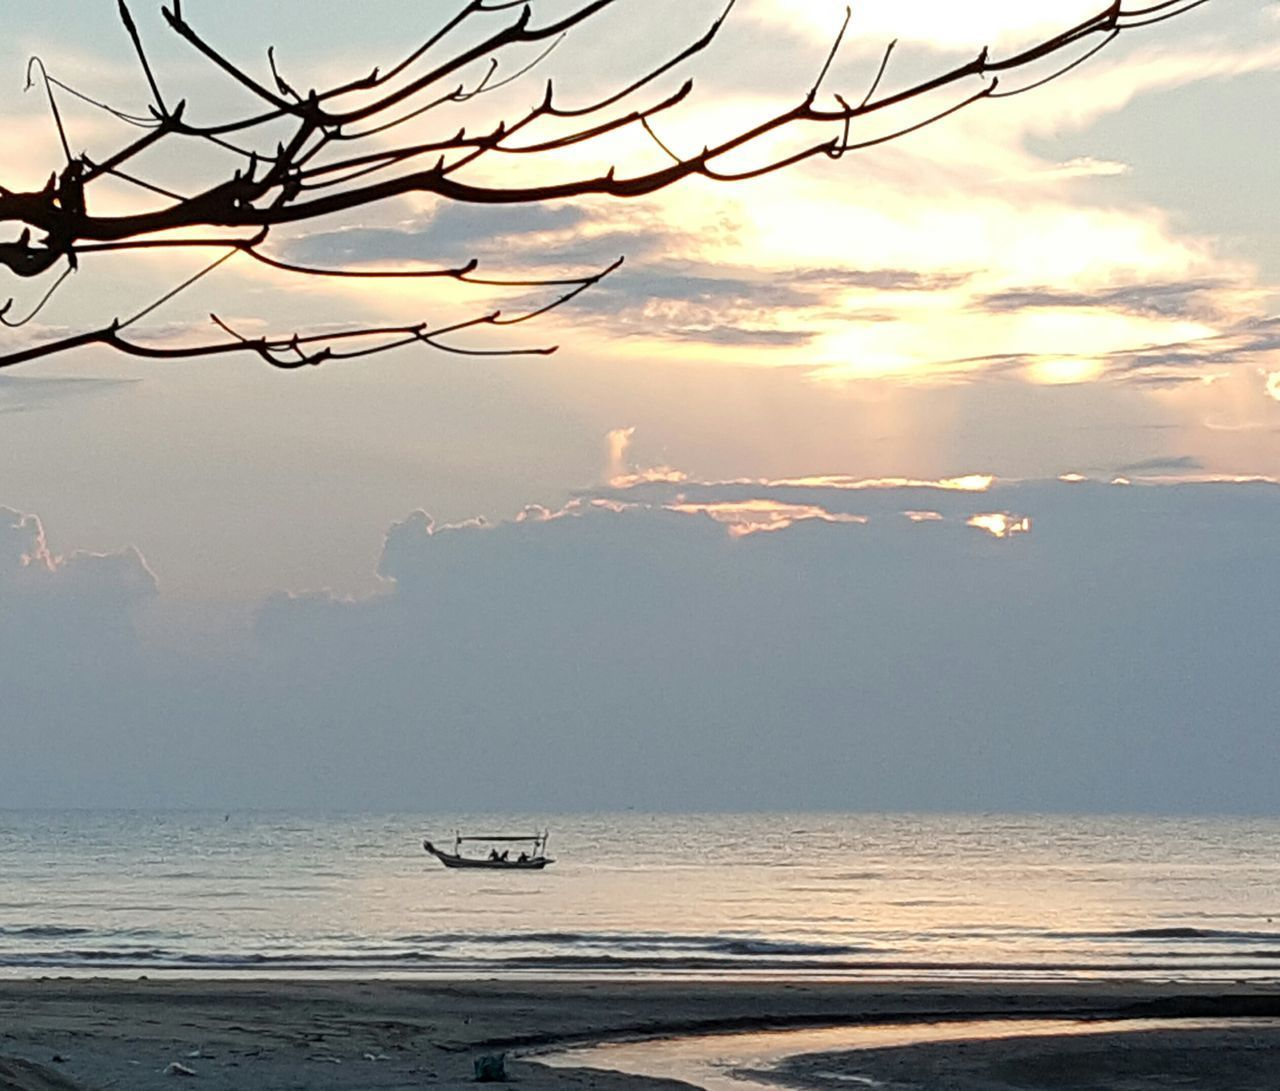 Fishing boat Sea Beach Tranquility Nature Water Beach Photography